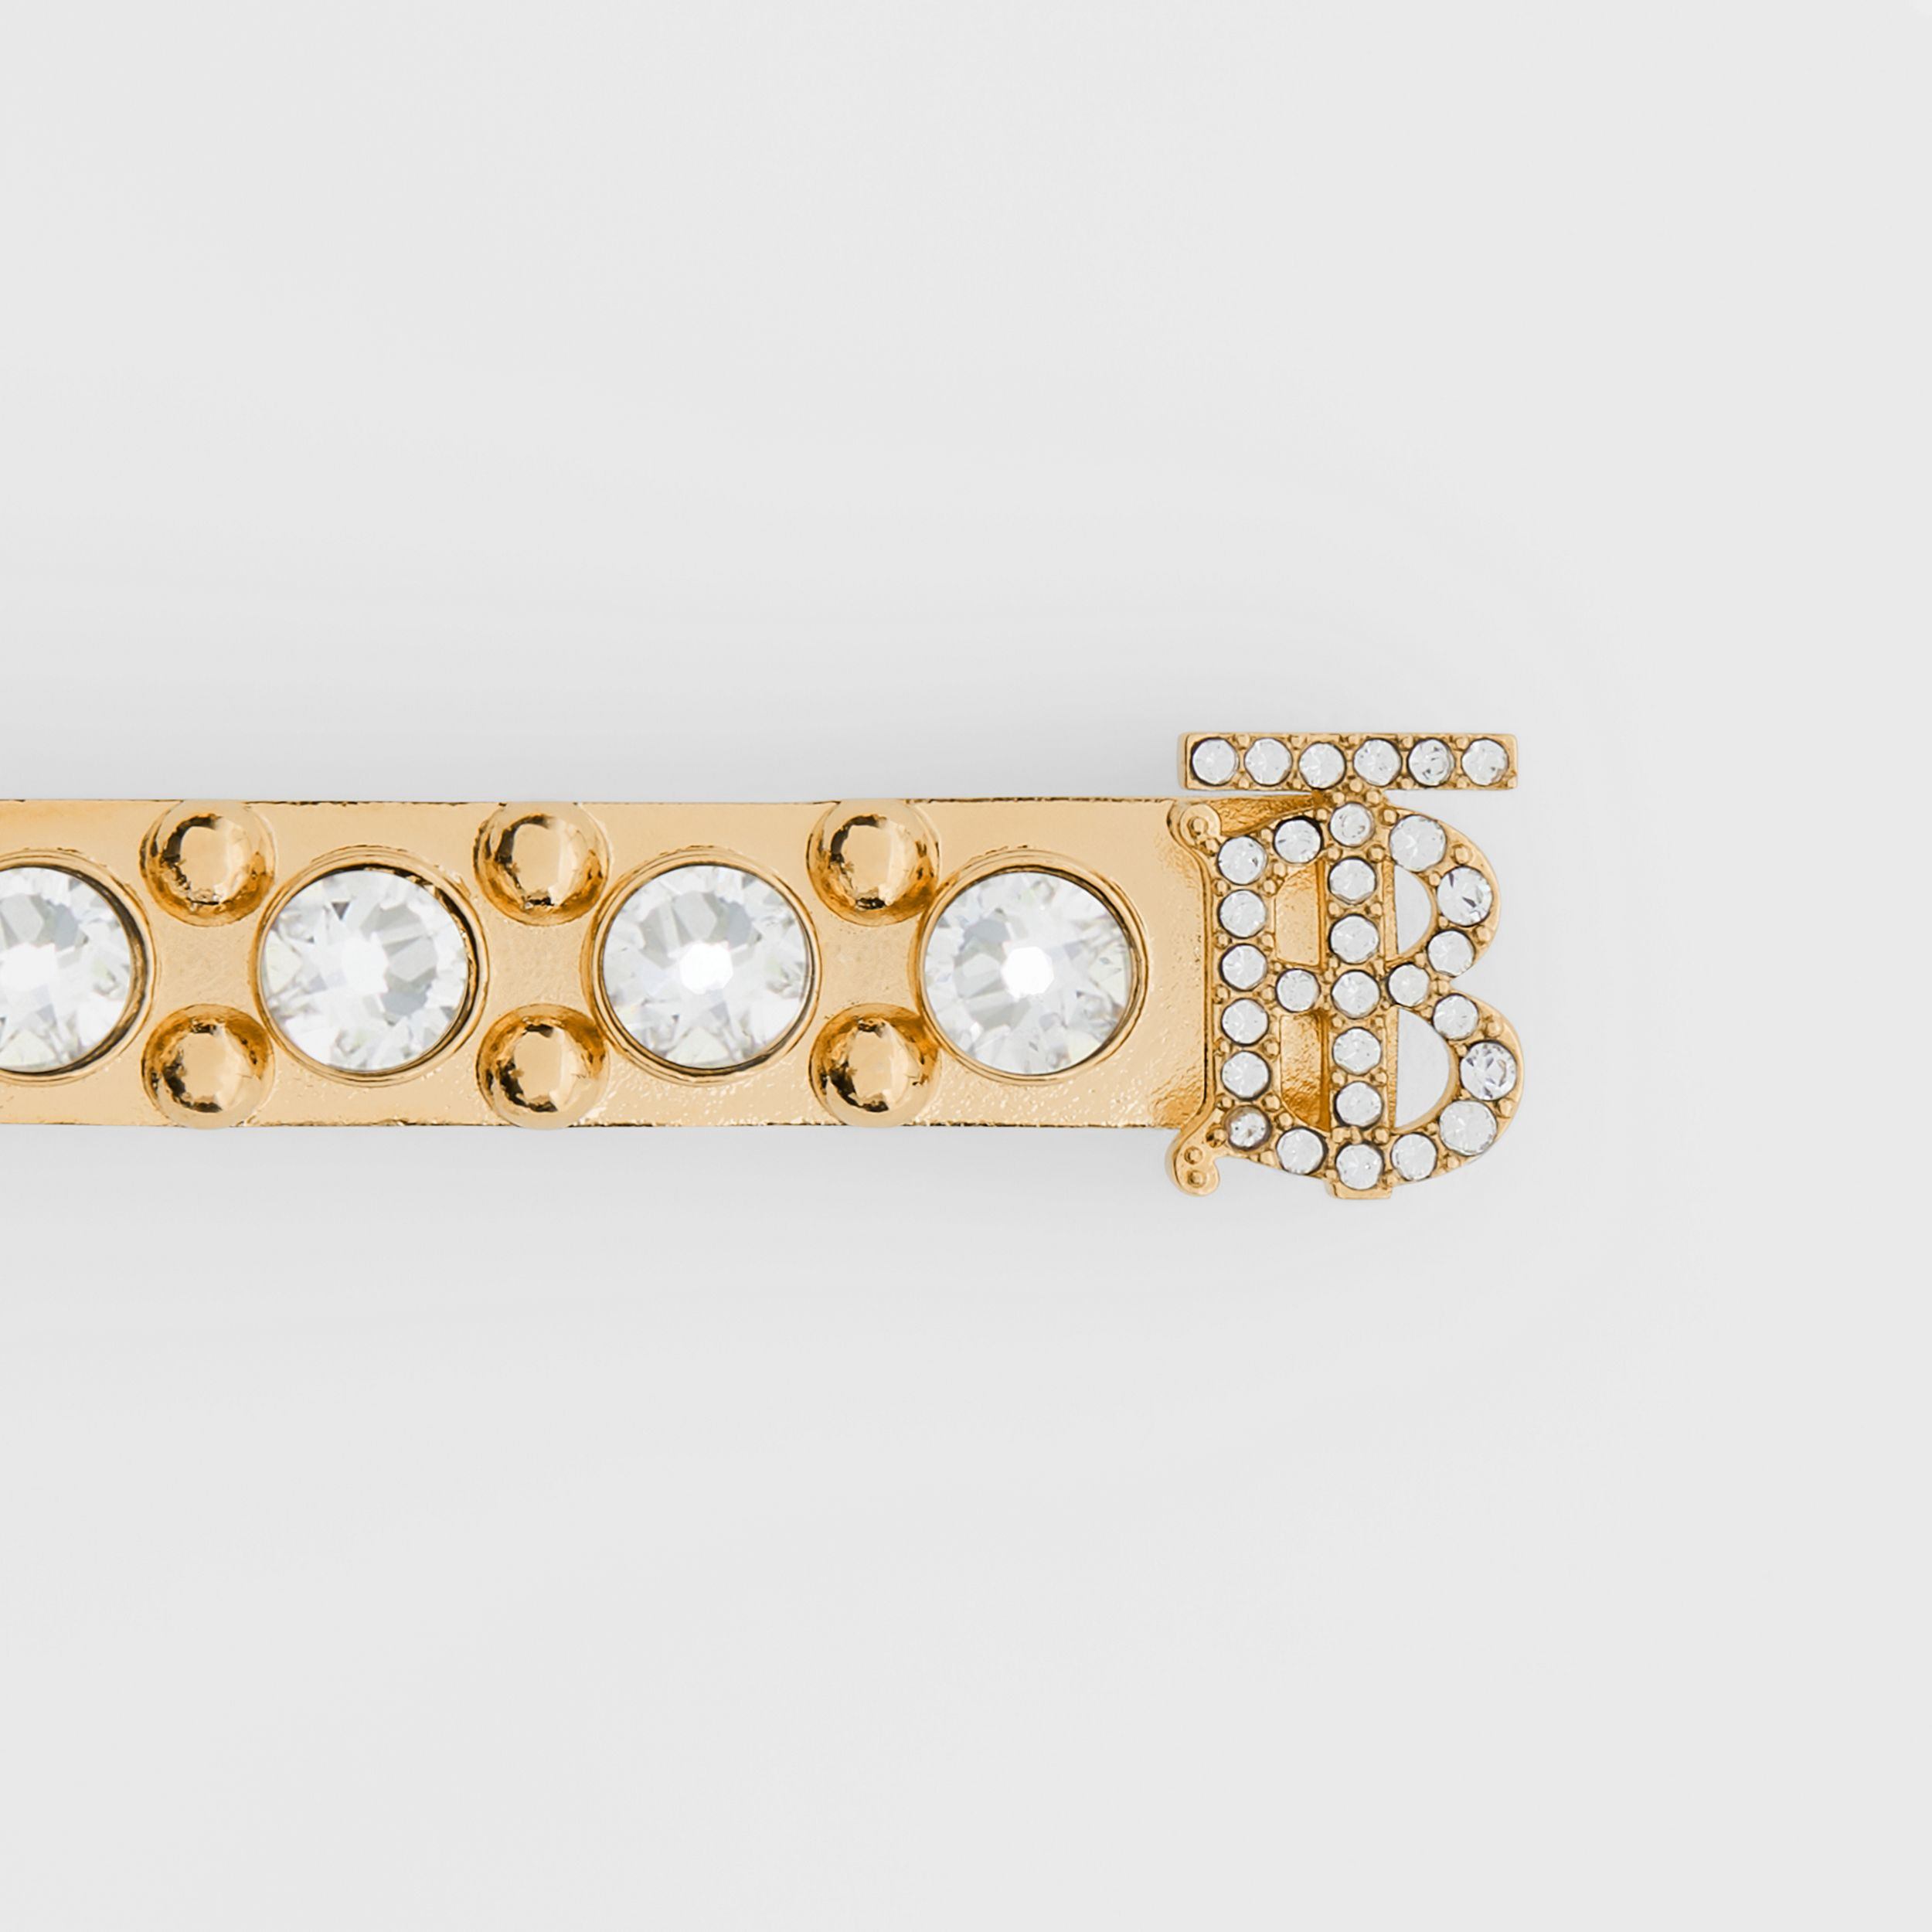 Crystal Monogram Motif Gold-plated Barrette in Light | Burberry - 4